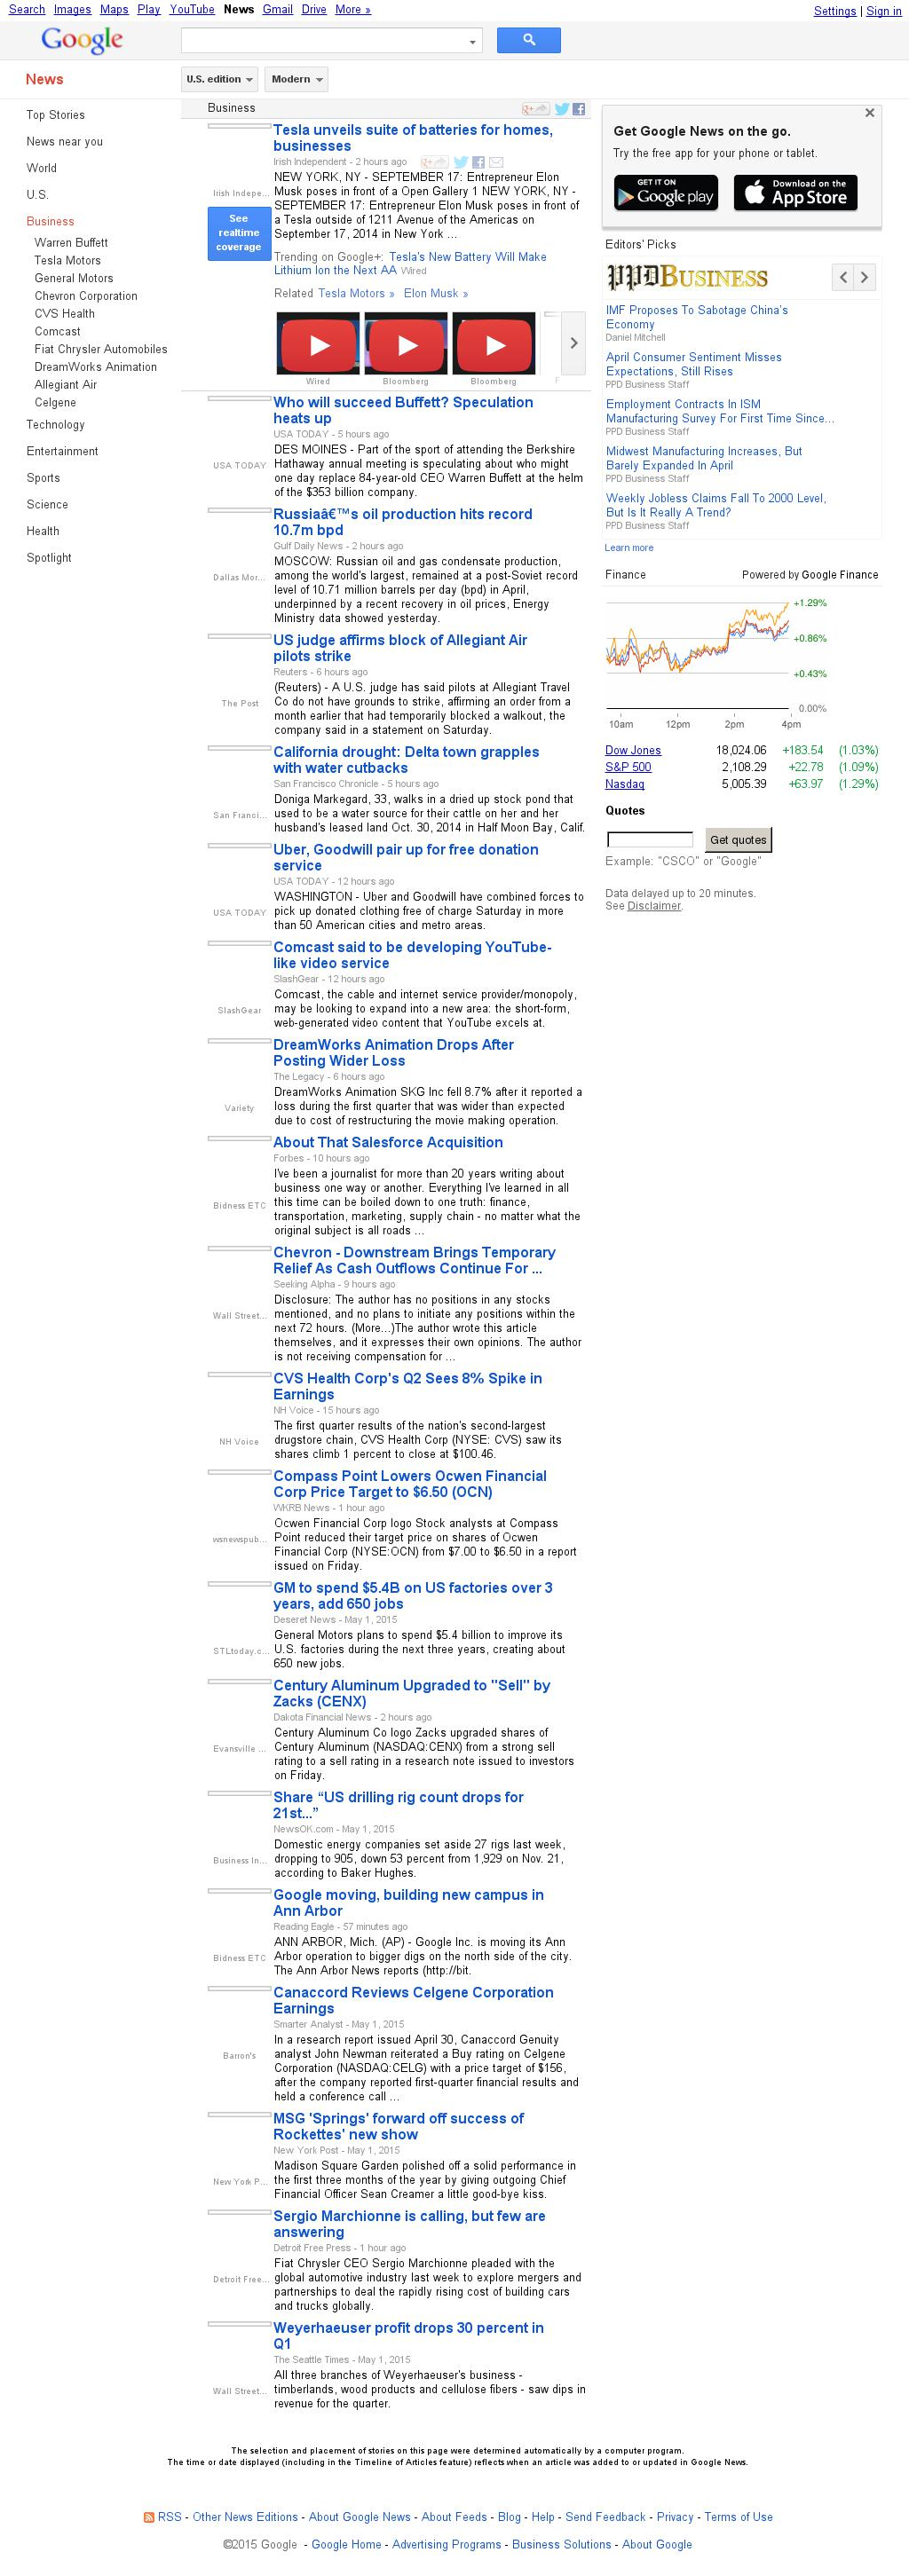 Google News: Business at Sunday May 3, 2015, 5:06 a.m. UTC